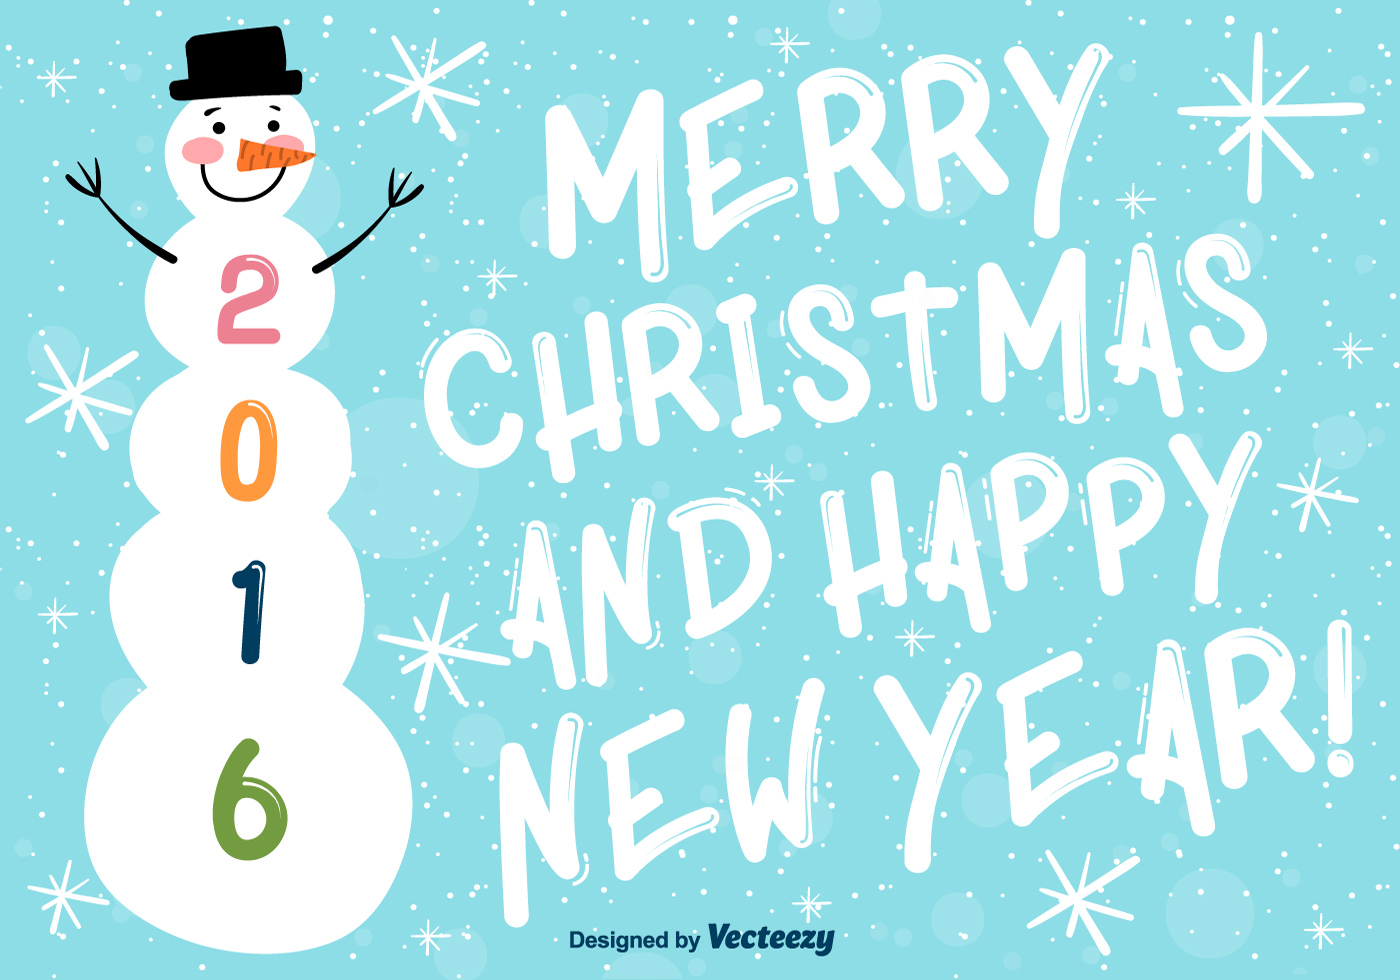 merry christmas and happy new year background download free vector art stock graphics images